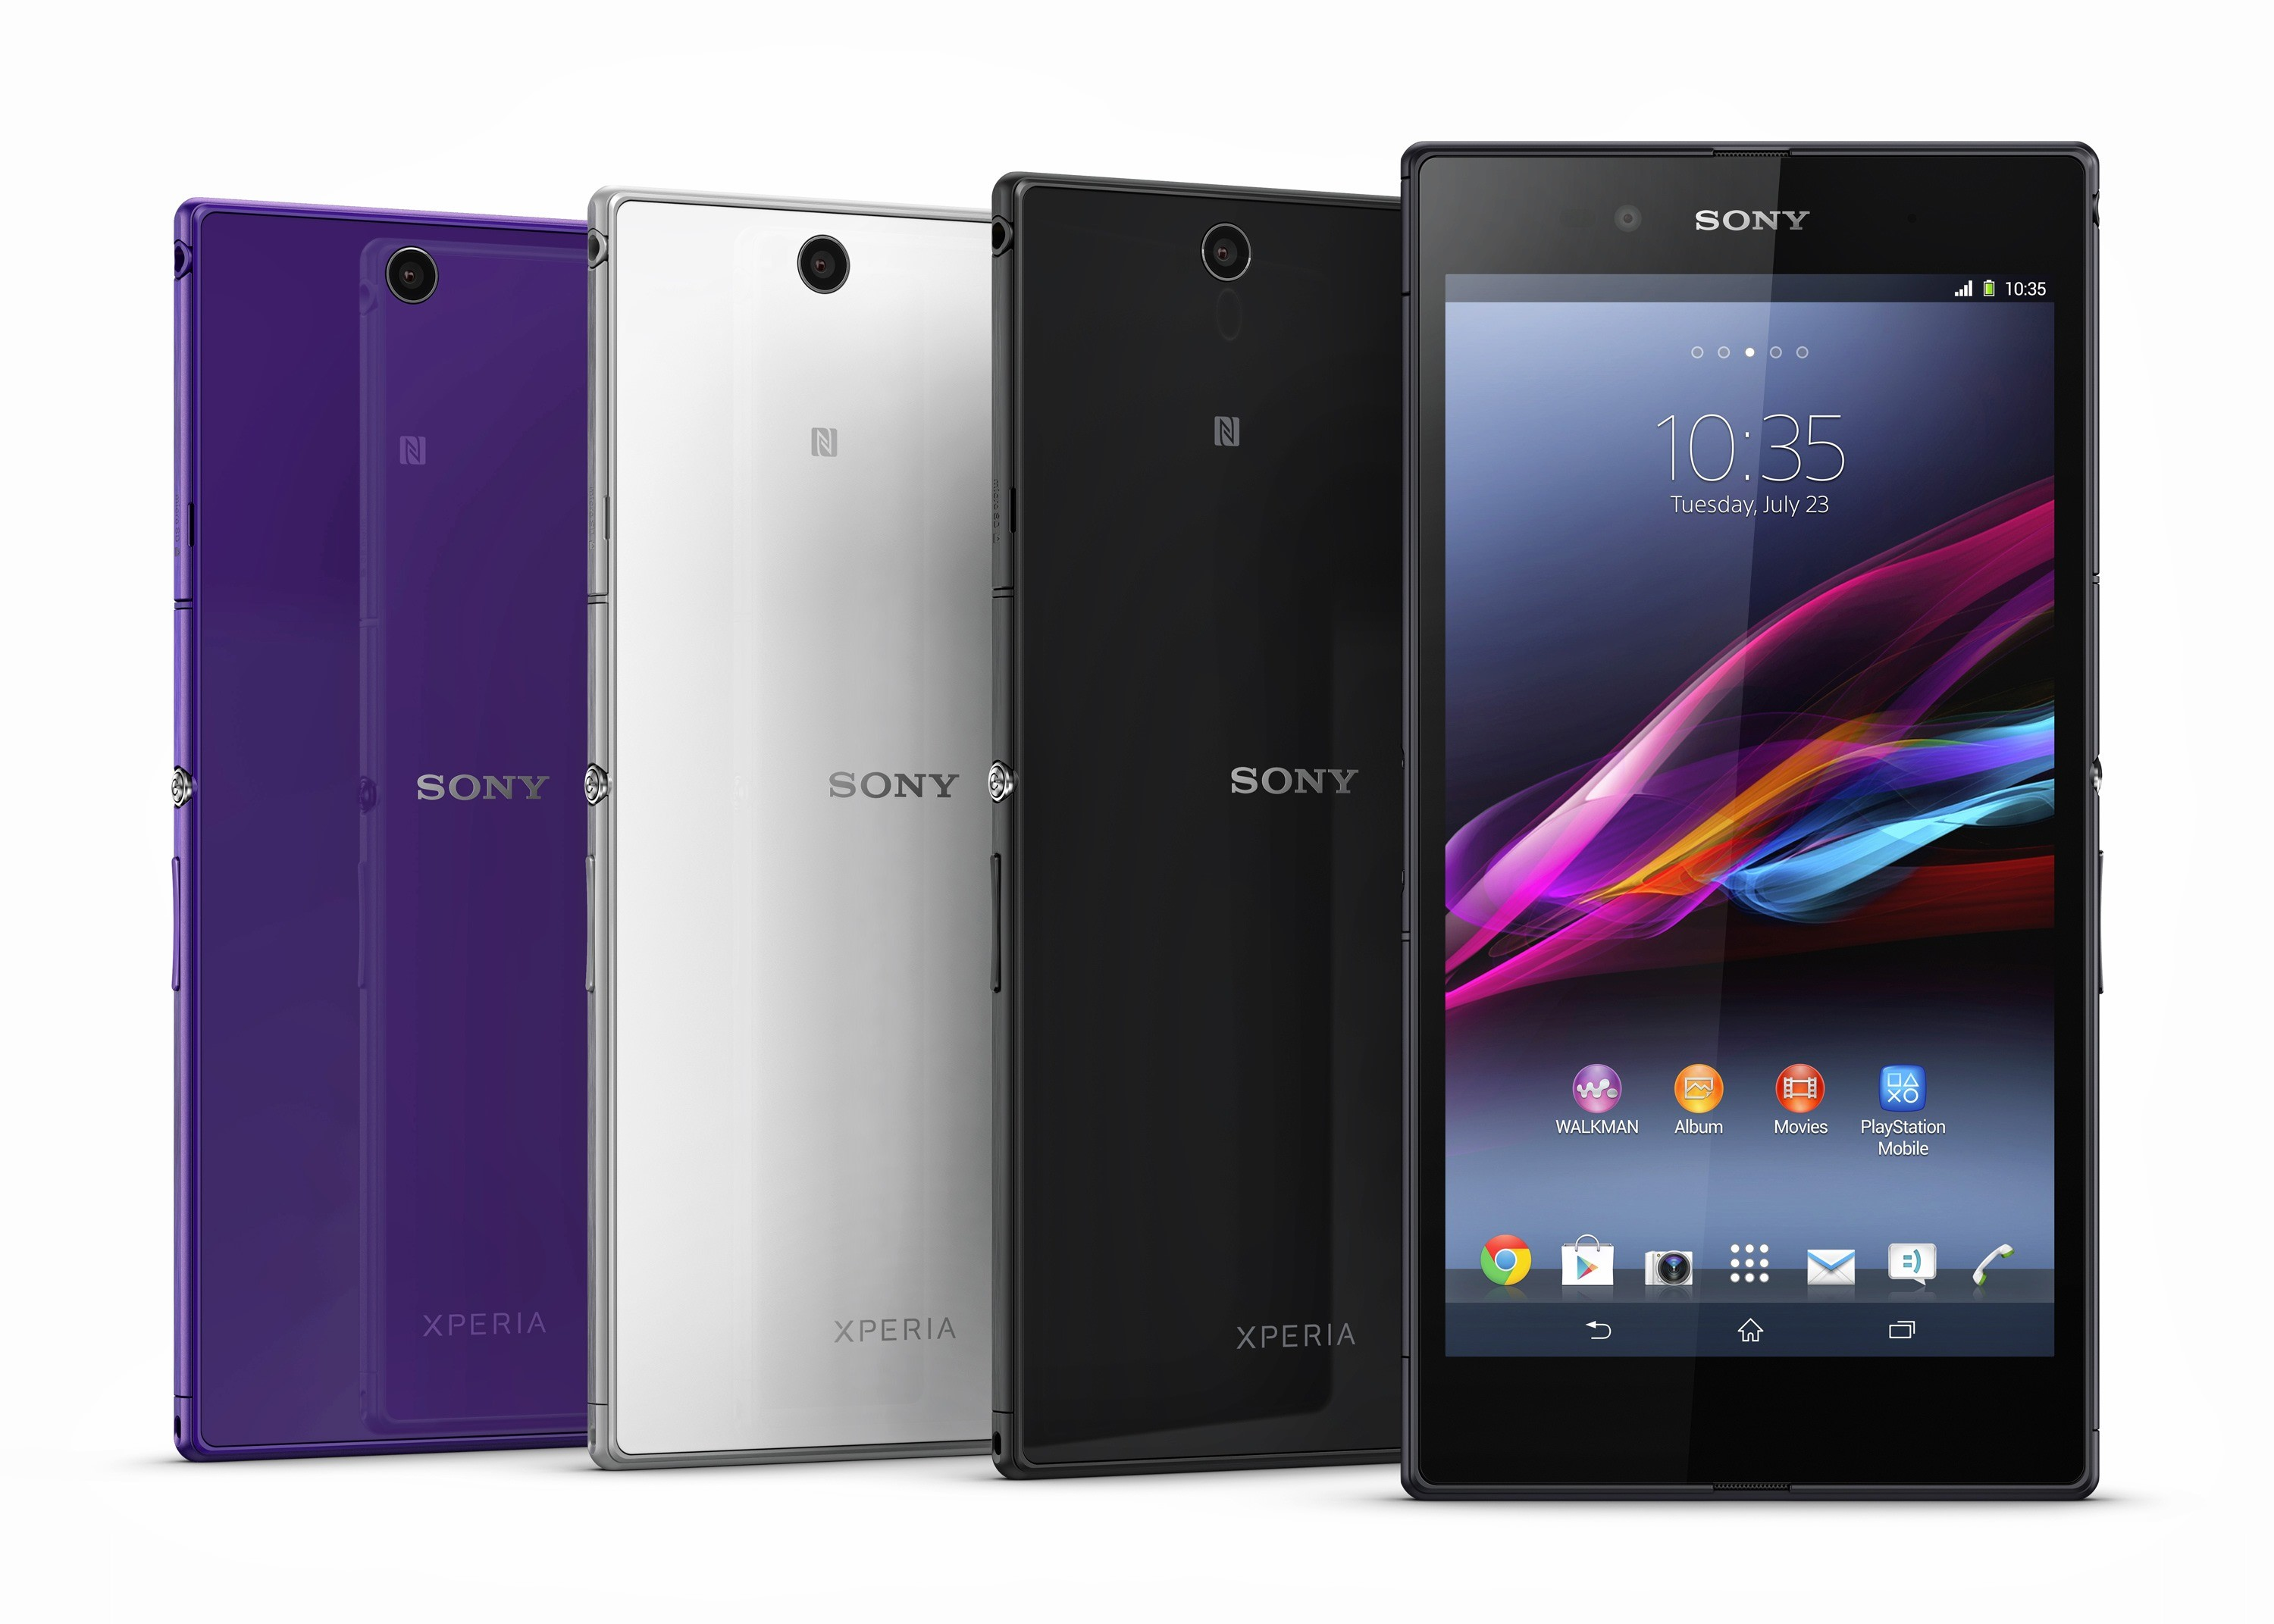 sony xperia z ultra c6833 black esquare new zealand. Black Bedroom Furniture Sets. Home Design Ideas